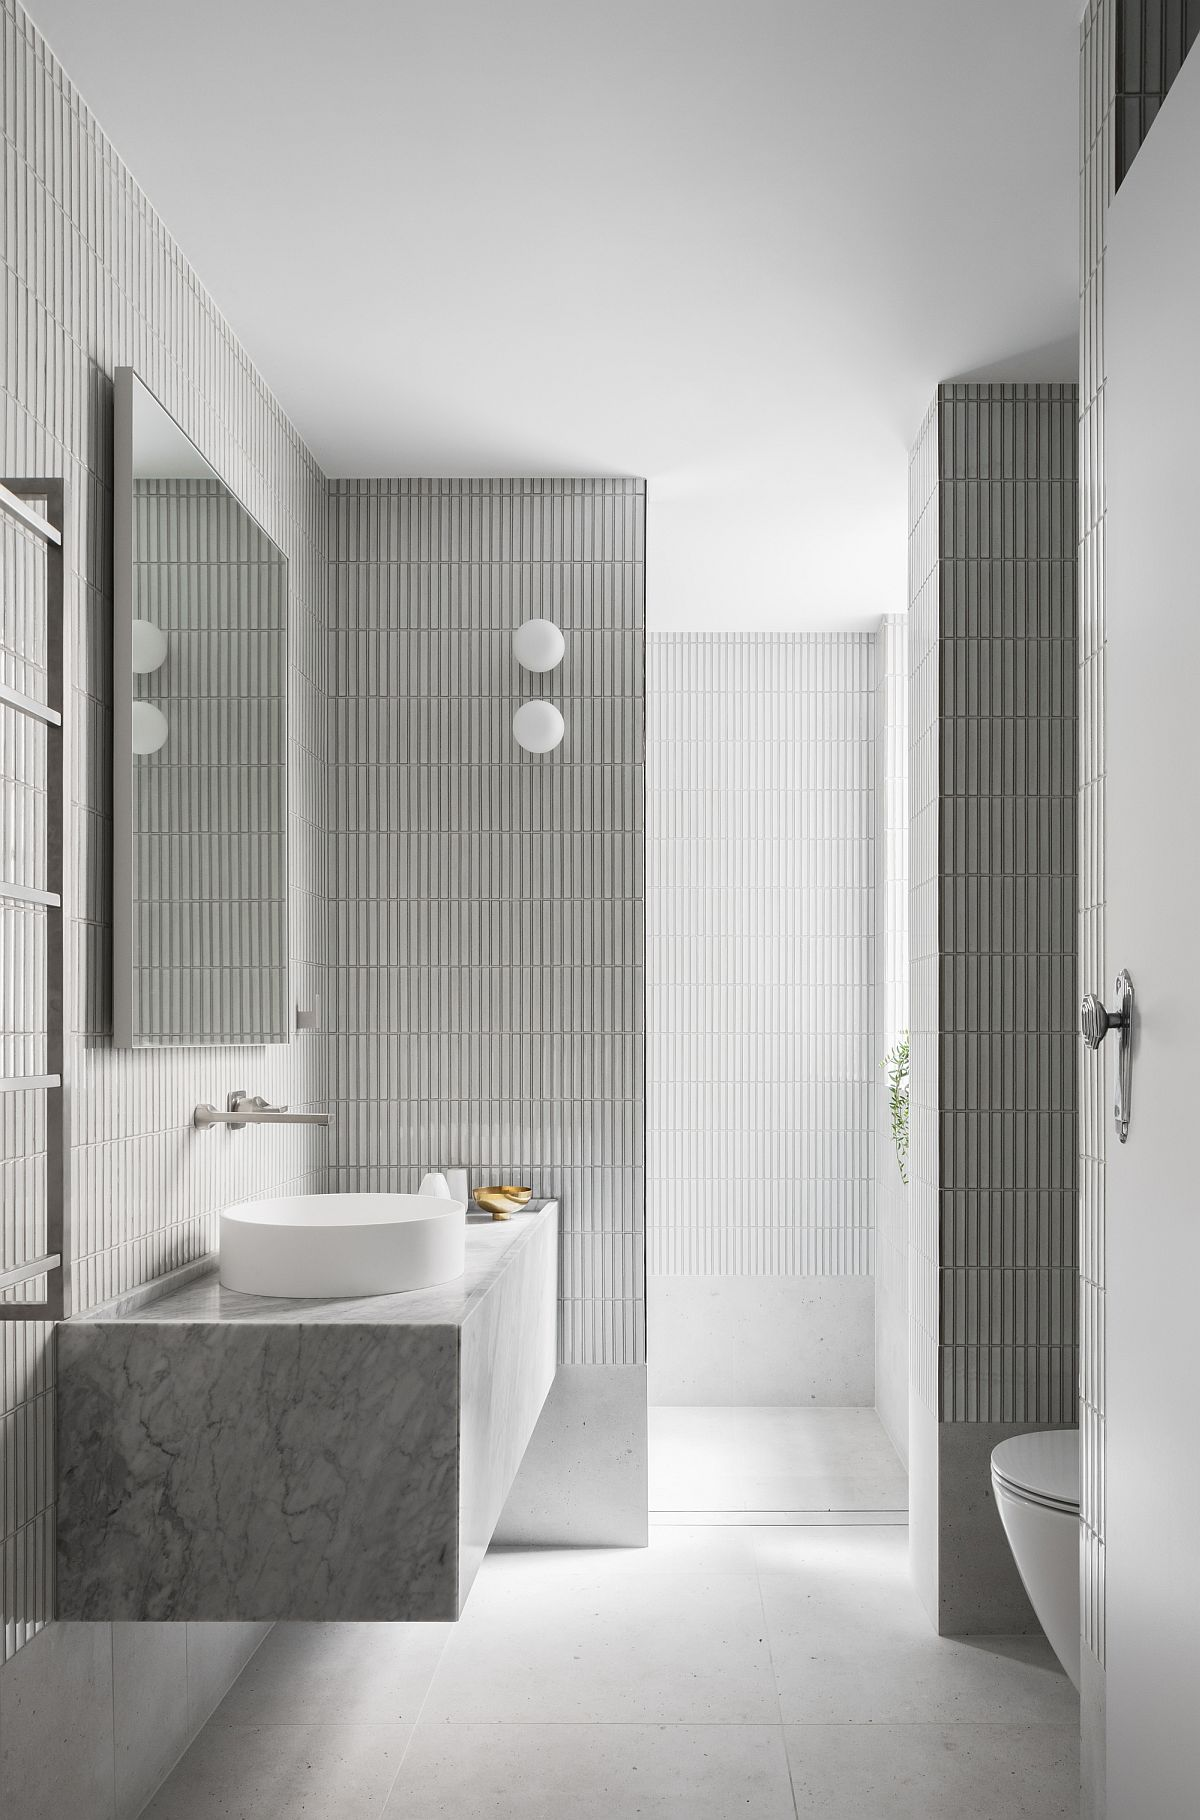 Gray and white bathroom with ample natural lighting